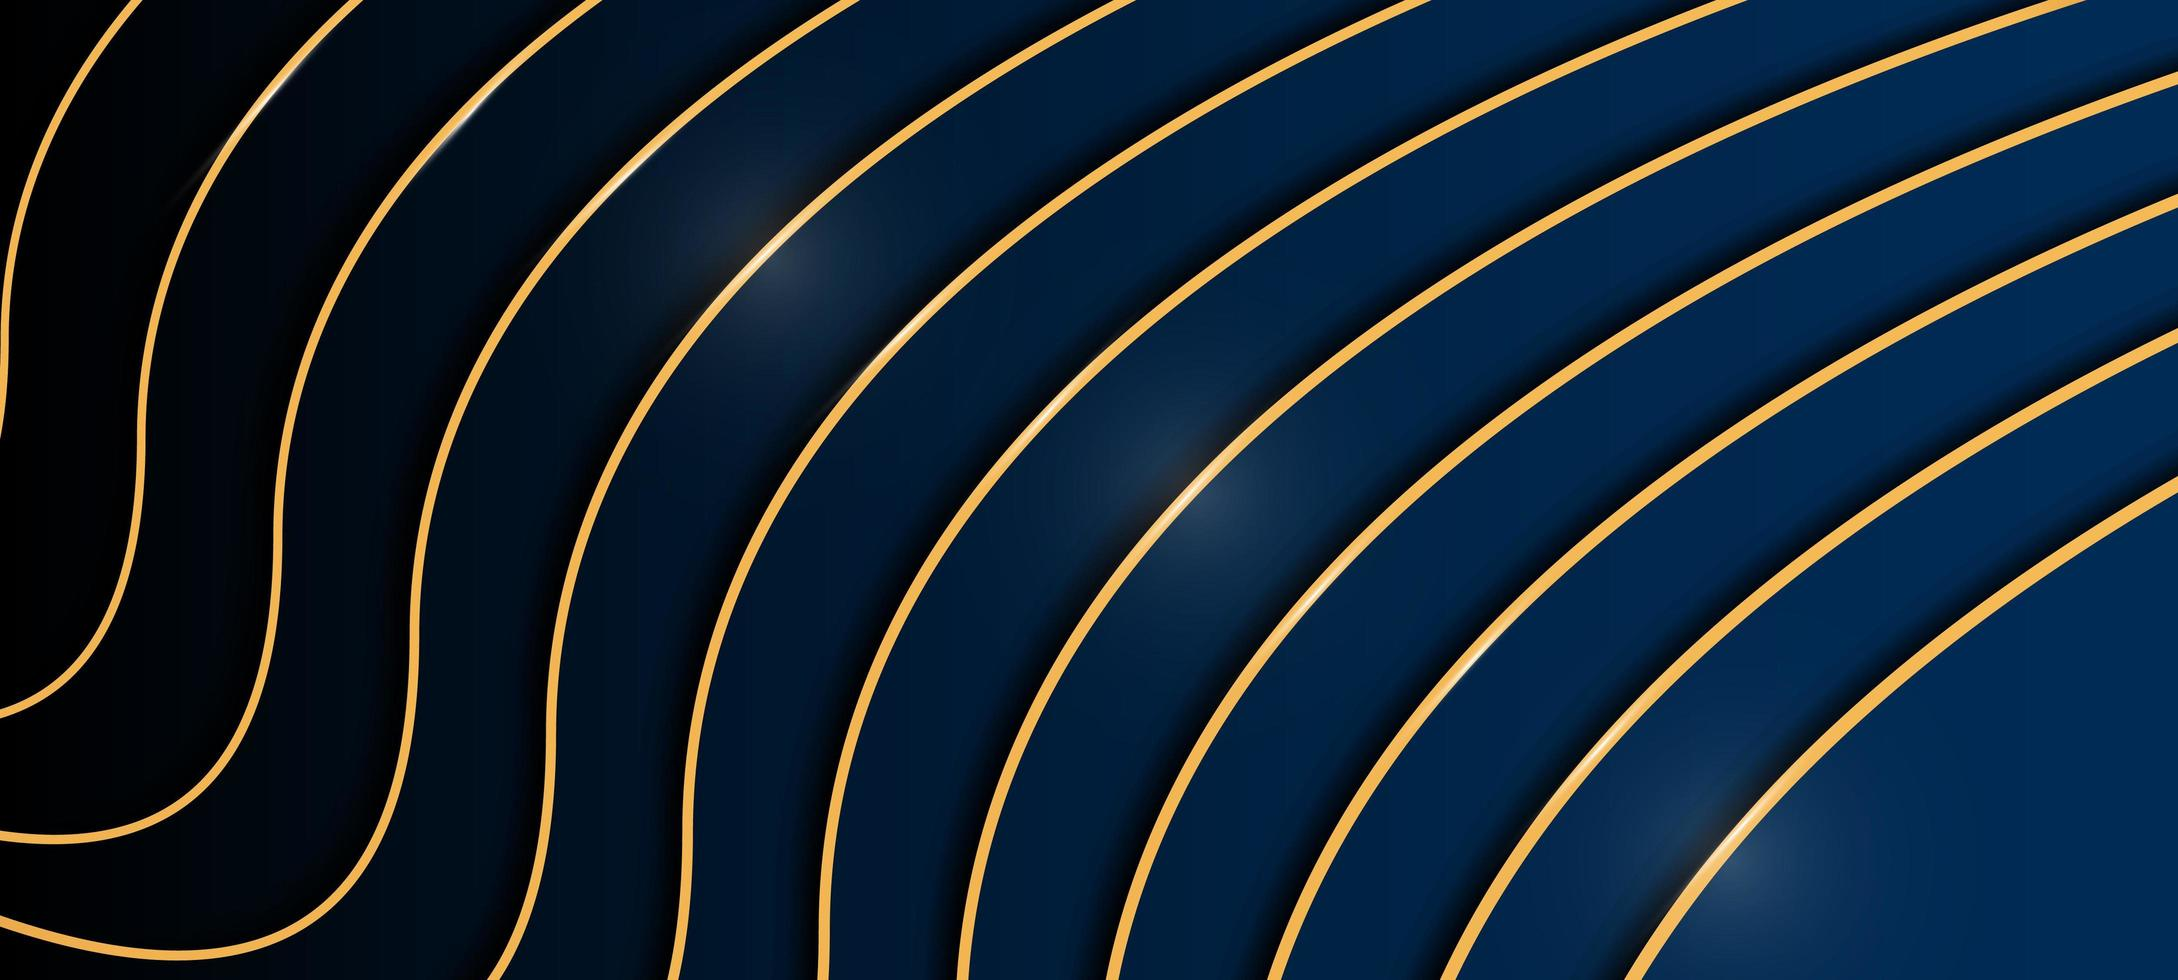 Elegant Blue and Black Background with Gold Lines vector